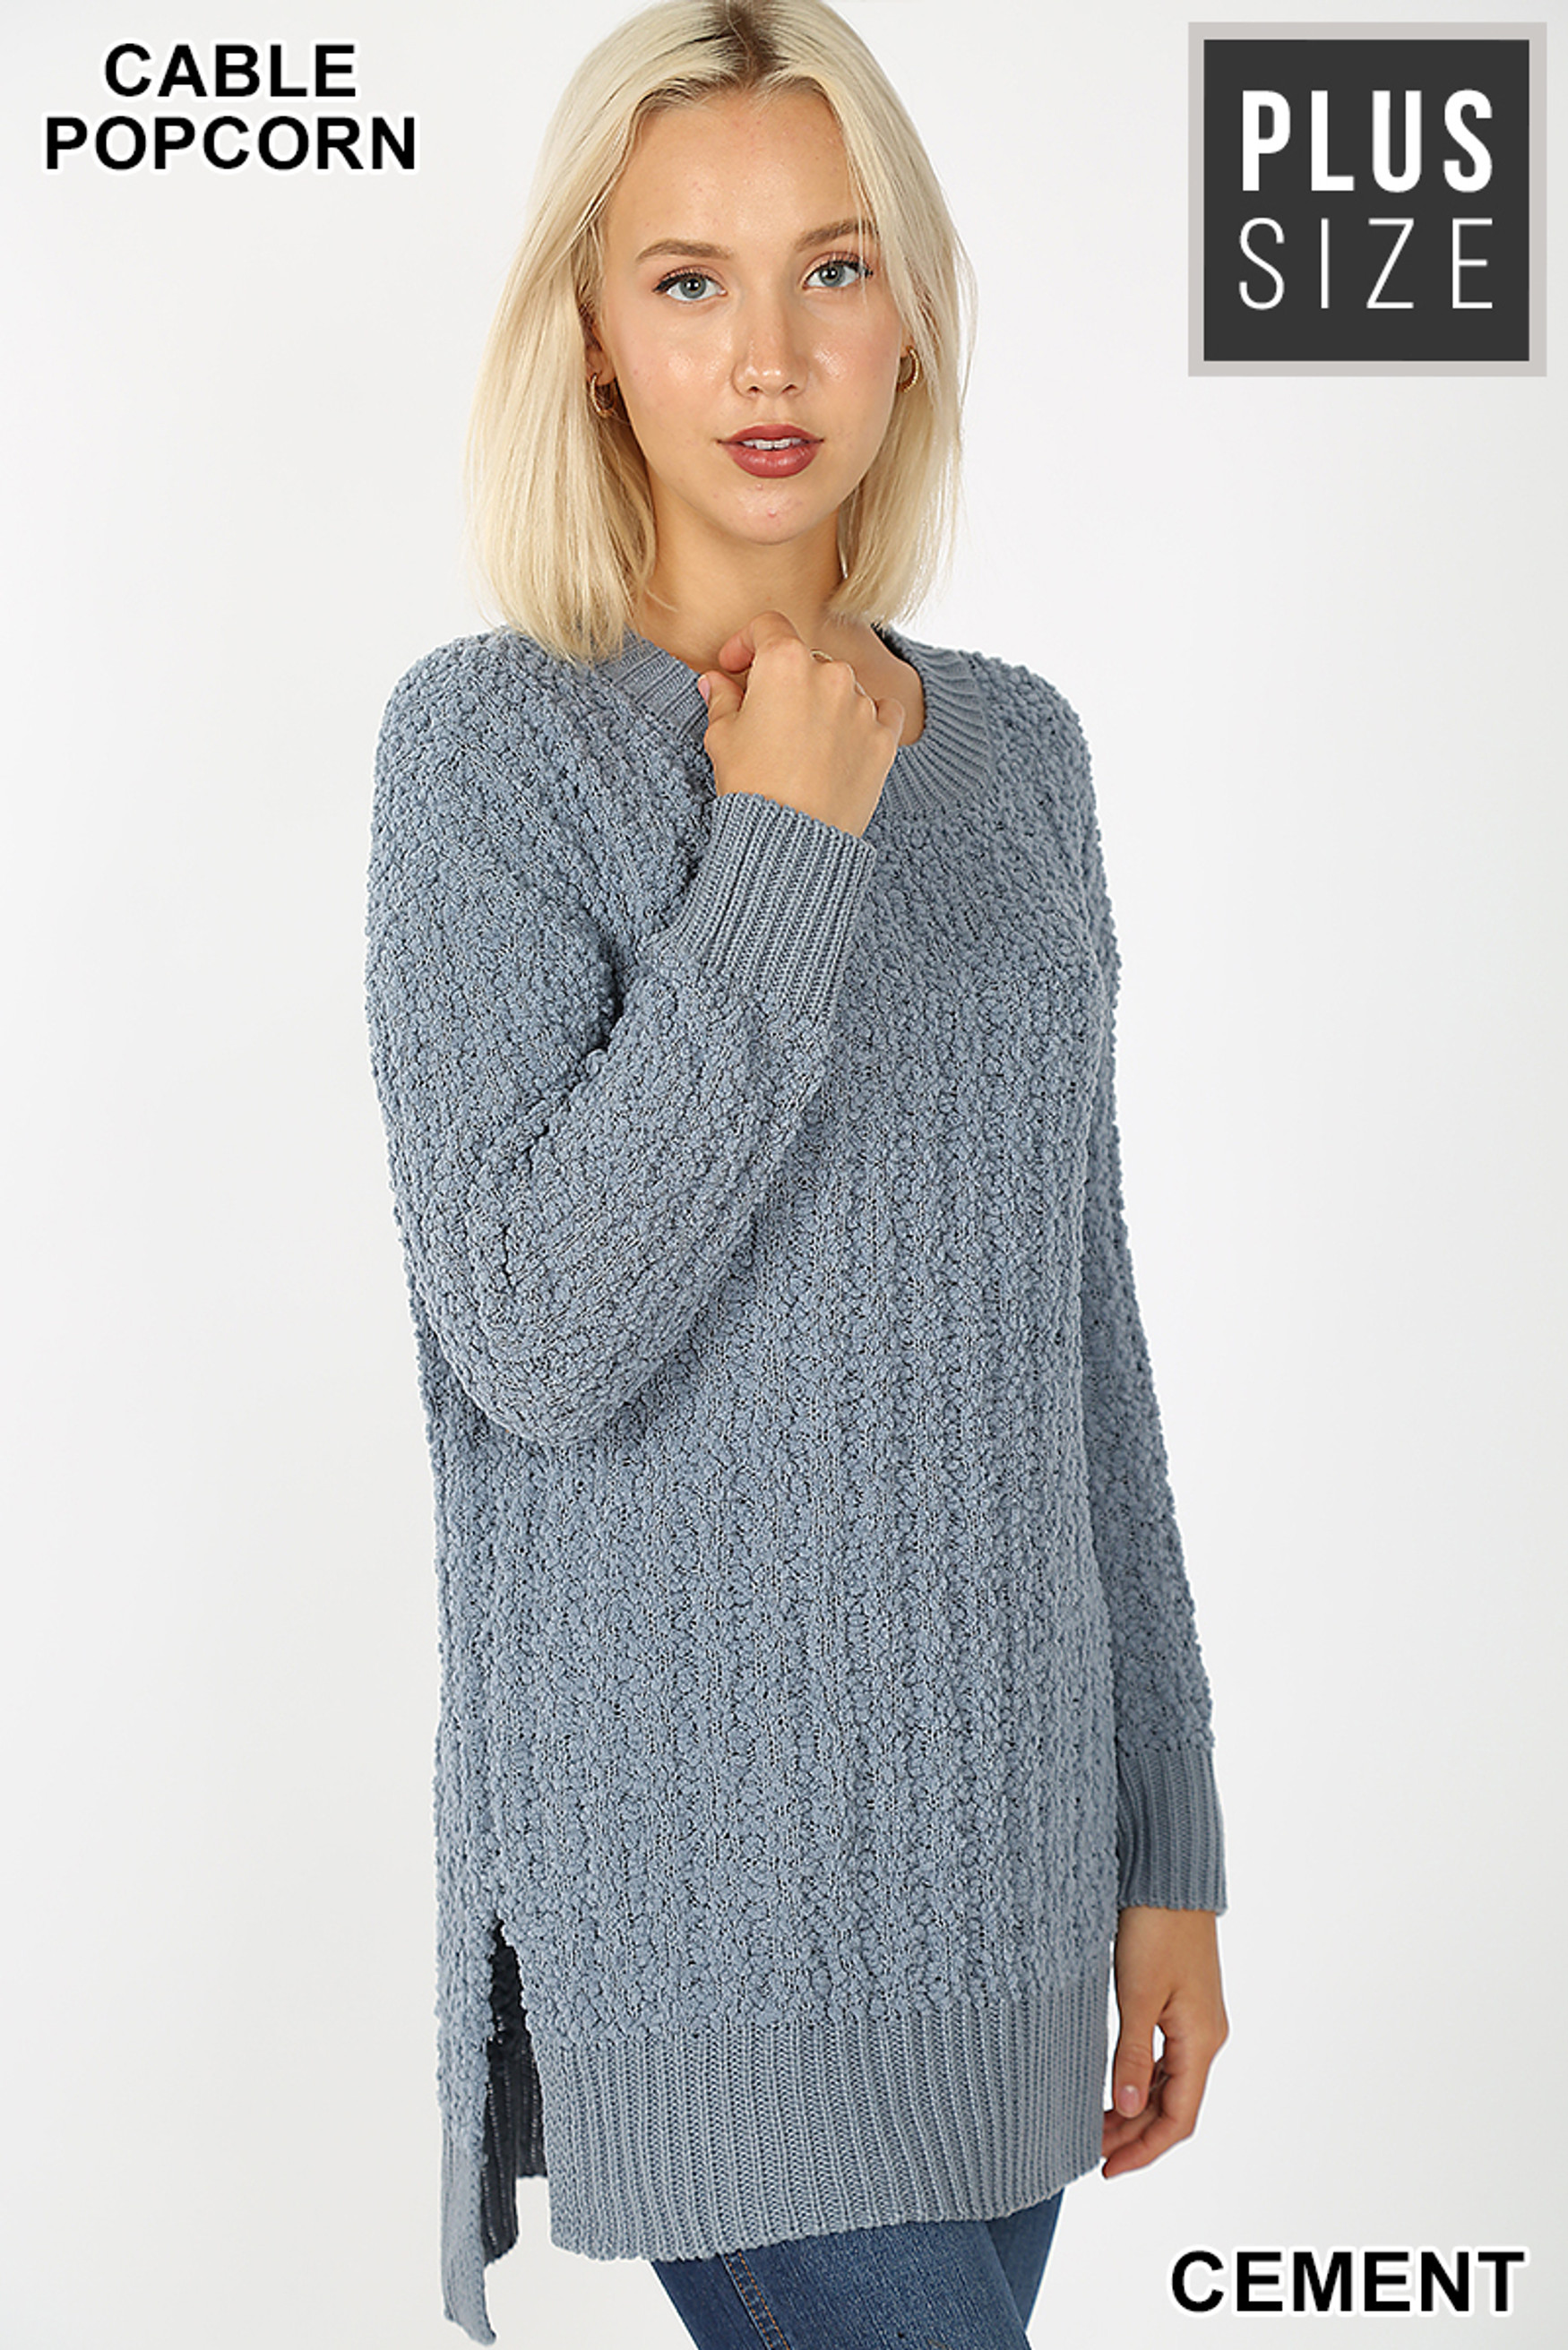 Front image of Cement Cable Knit Popcorn Round Neck Hi-Low Plus Size Sweater